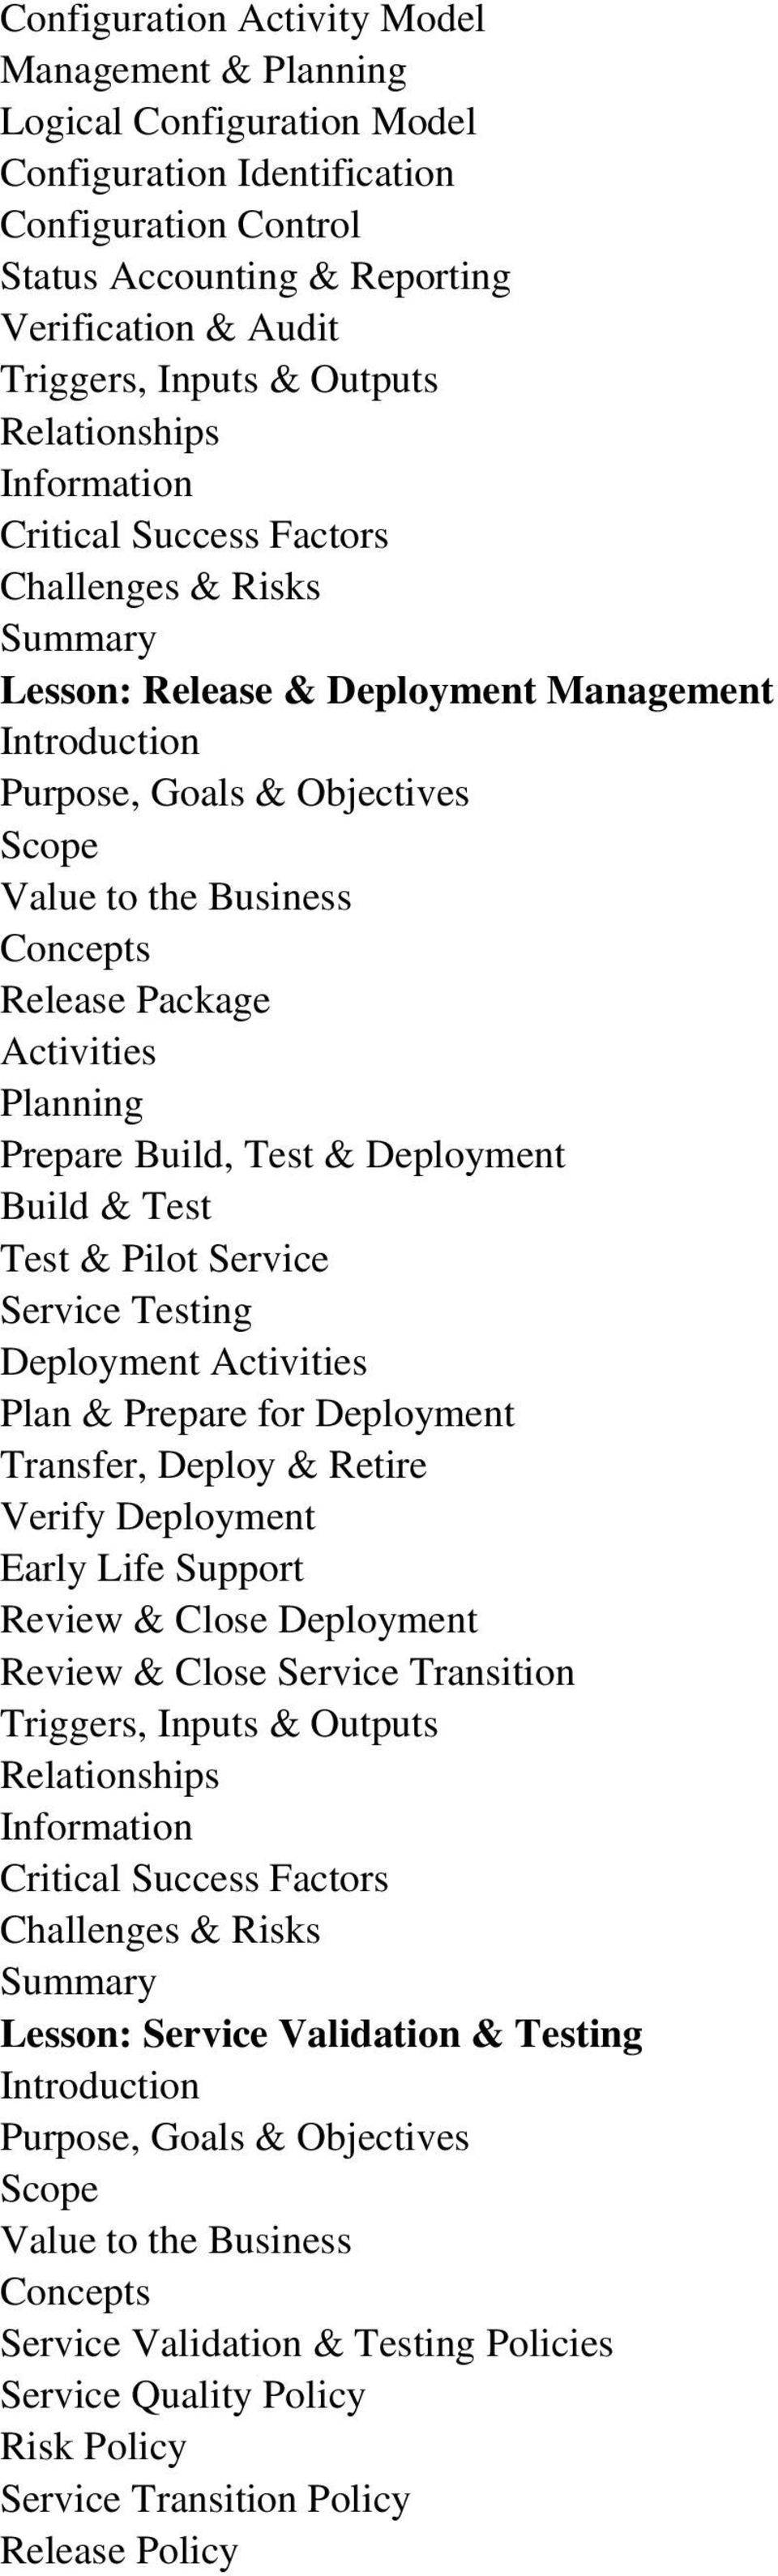 Testing Deployment Plan & Prepare for Deployment Transfer, Deploy & Retire Verify Deployment Early Life Support Review & Close Deployment Review & Close Service